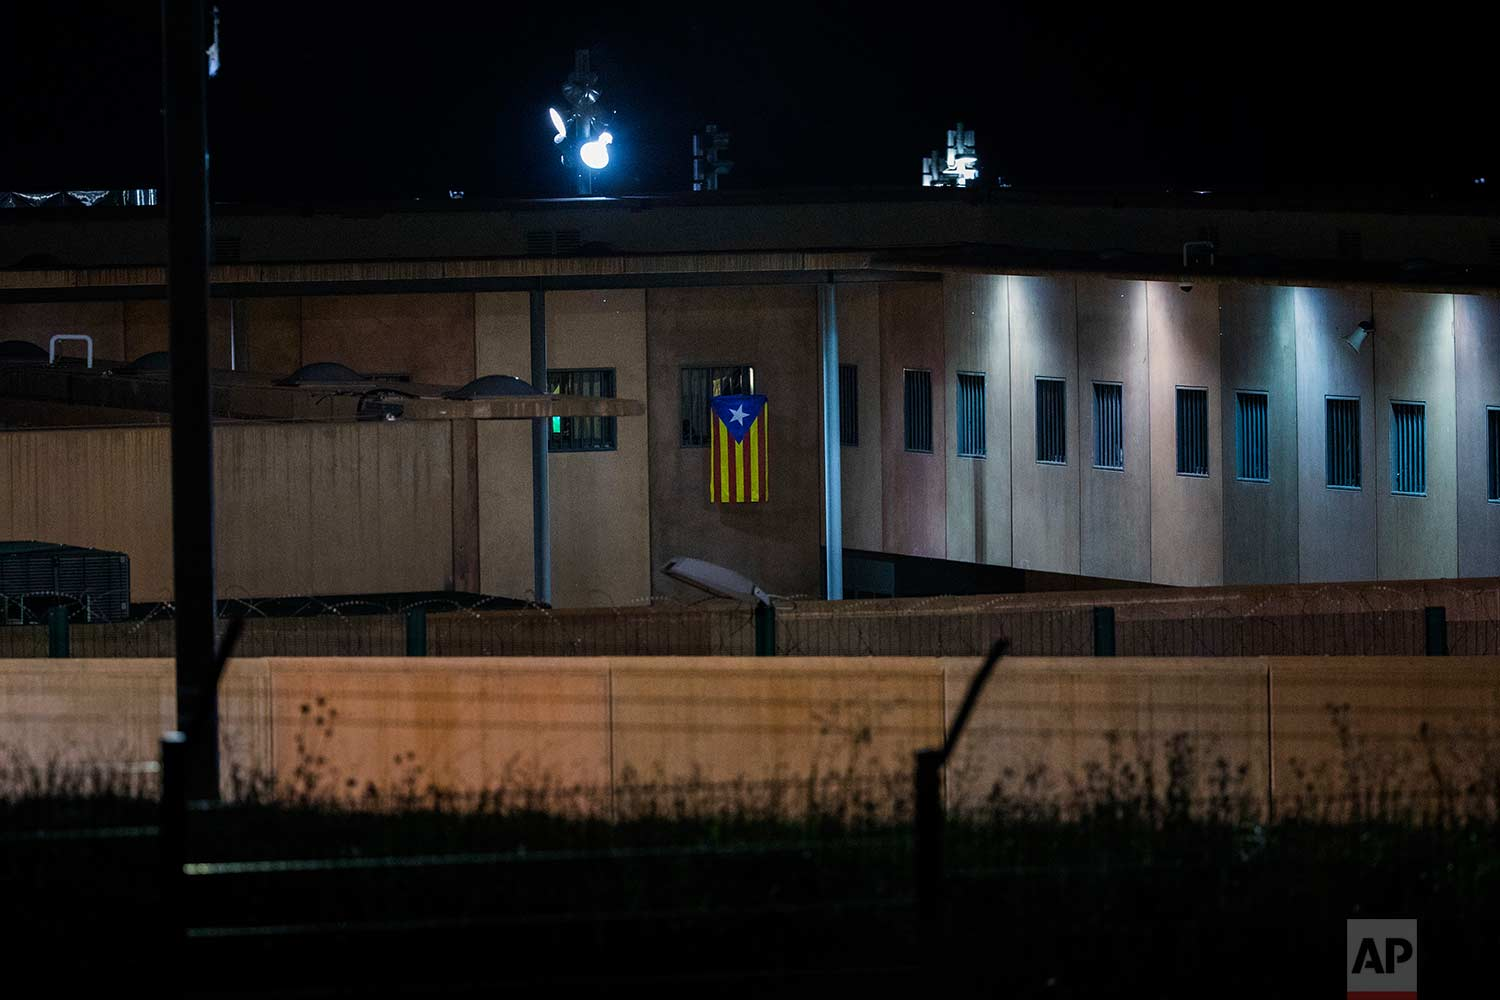 "In this Tuesday, Sept. 18, 2018 photo, an ""estelada"" or independence flag, is waved from the window of a cell in Lledoners prison, in Sant Joan de Vilatorrada, about 50 kilometres away from Barcelona, Spain. (AP Photo/Emilio Morenatti)"